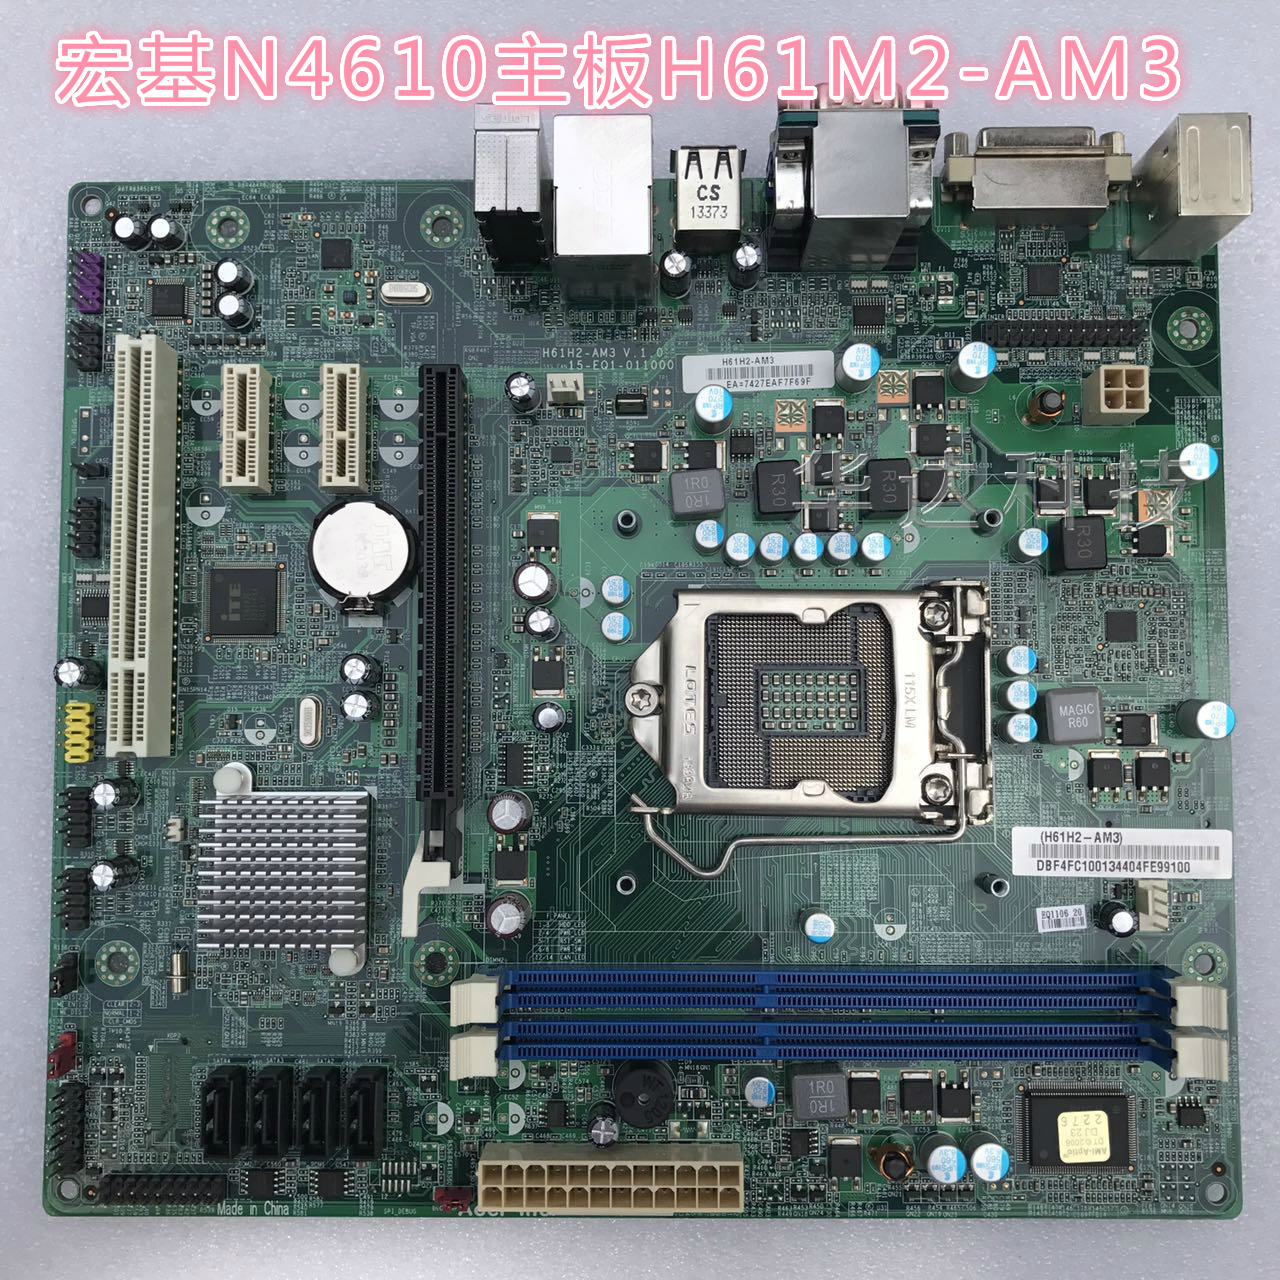 Download Drivers: Acer H61H2-AM3